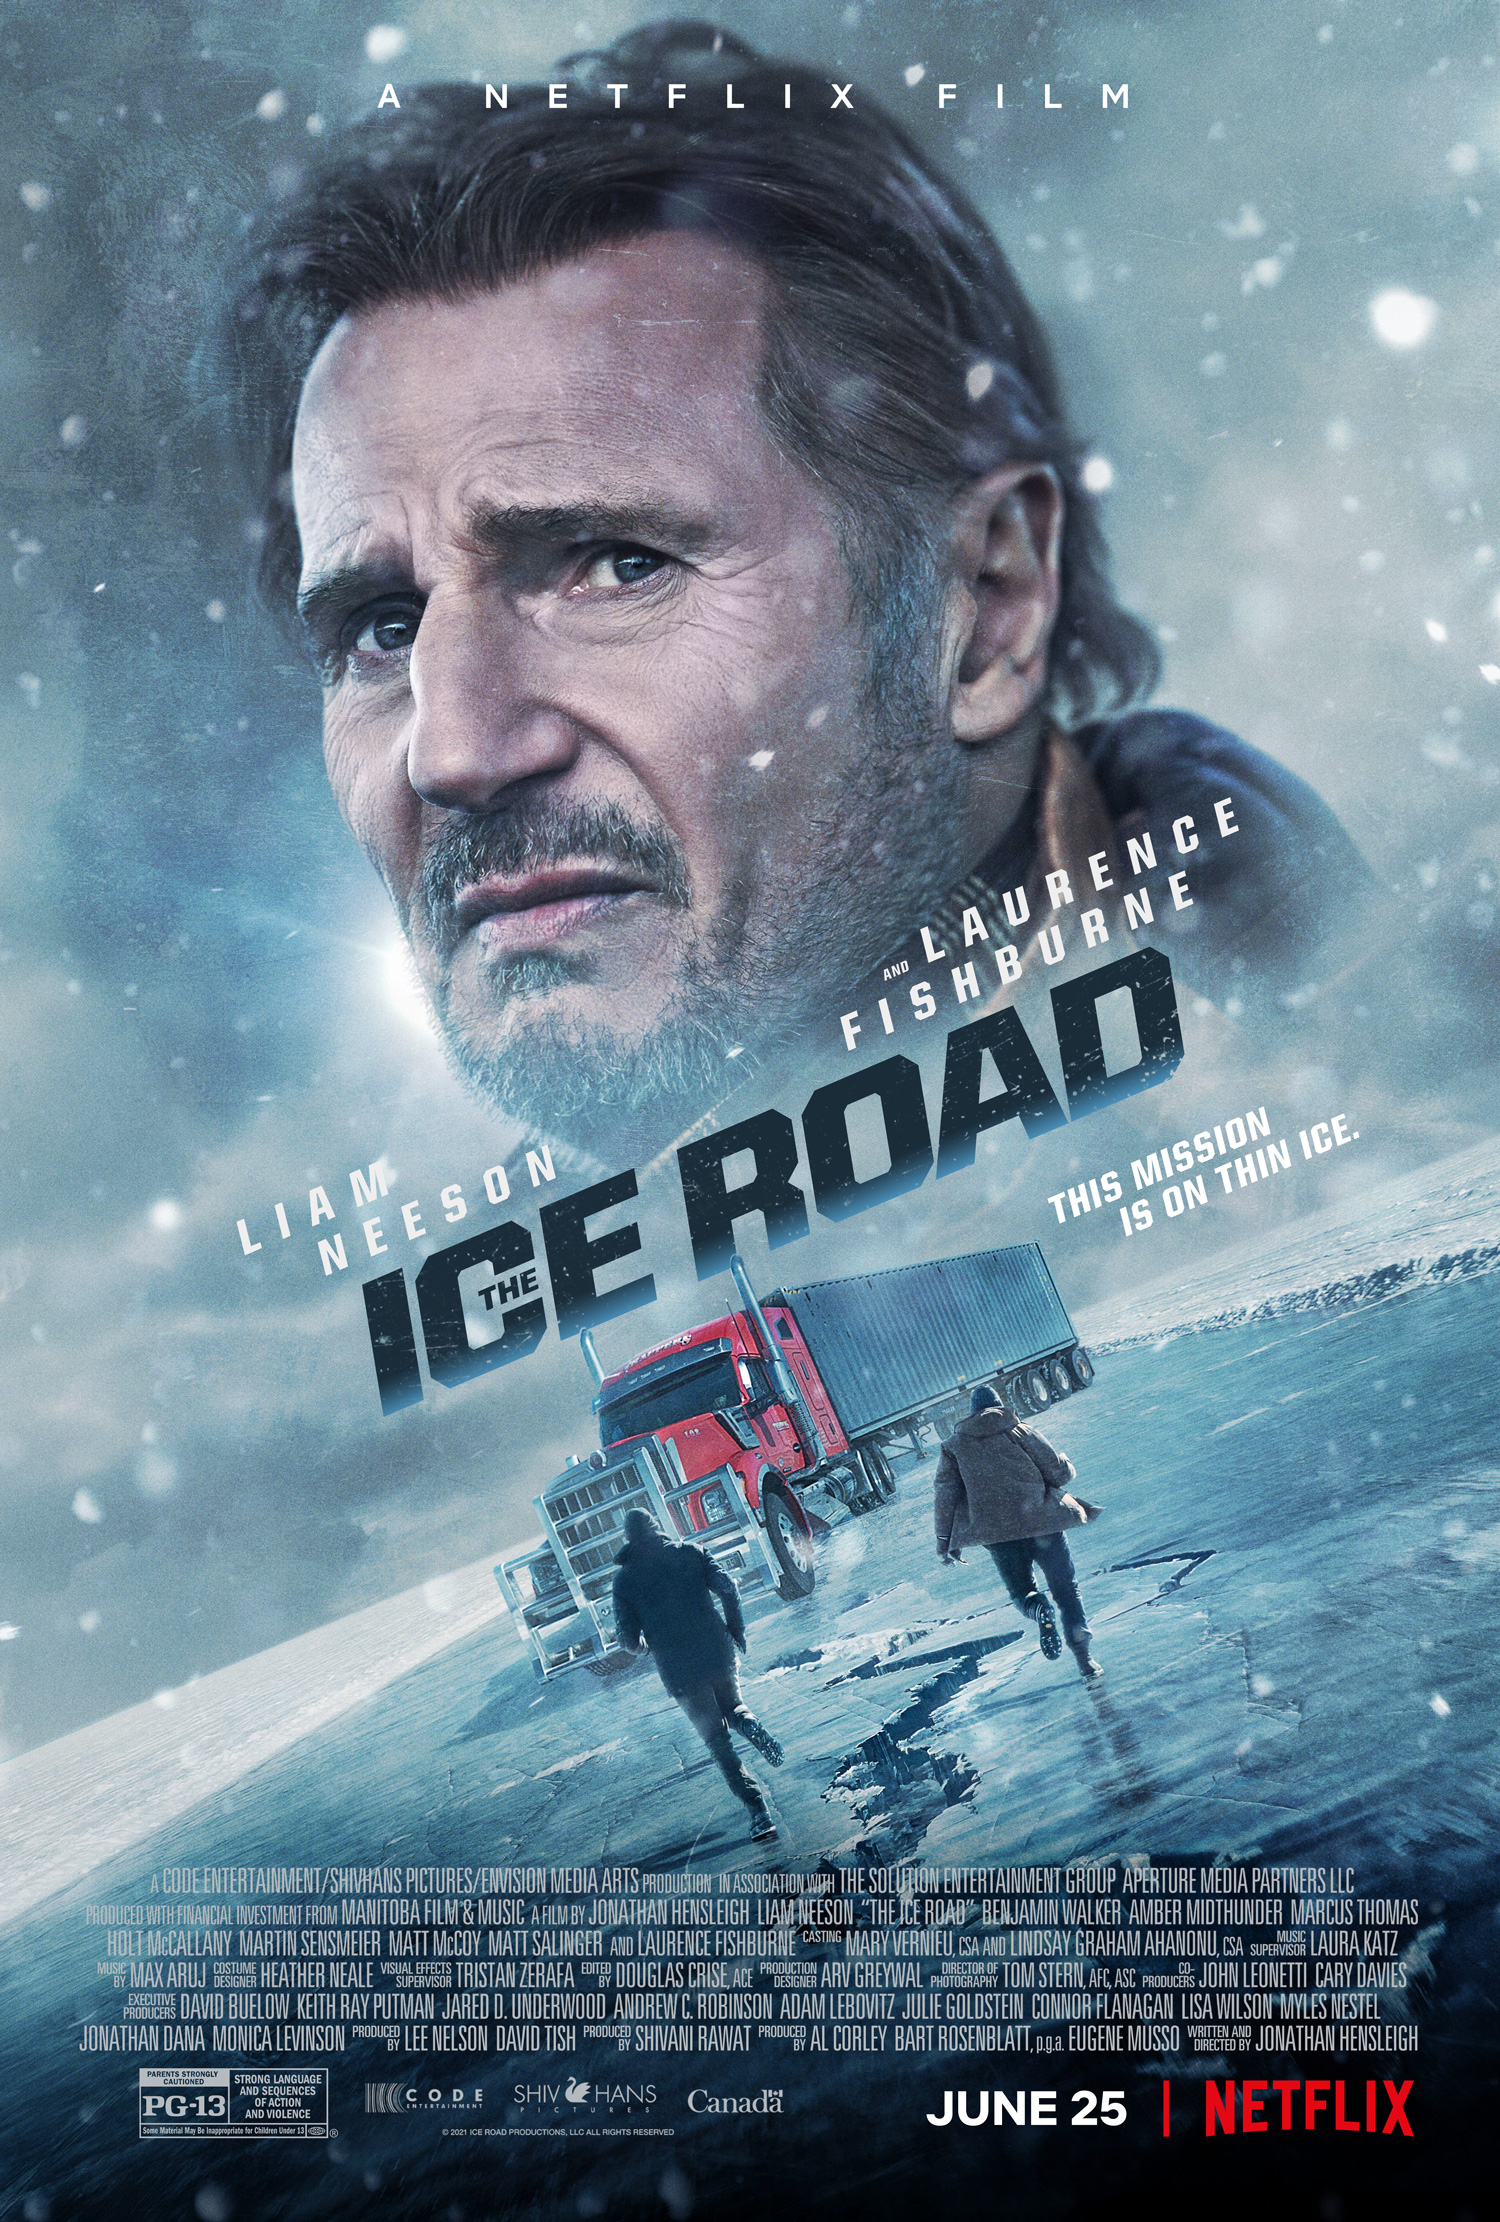 The Ice Road (2021) Bengali Dubbed (Voice Over) WEBRip 720p [Full Movie] 1XBET